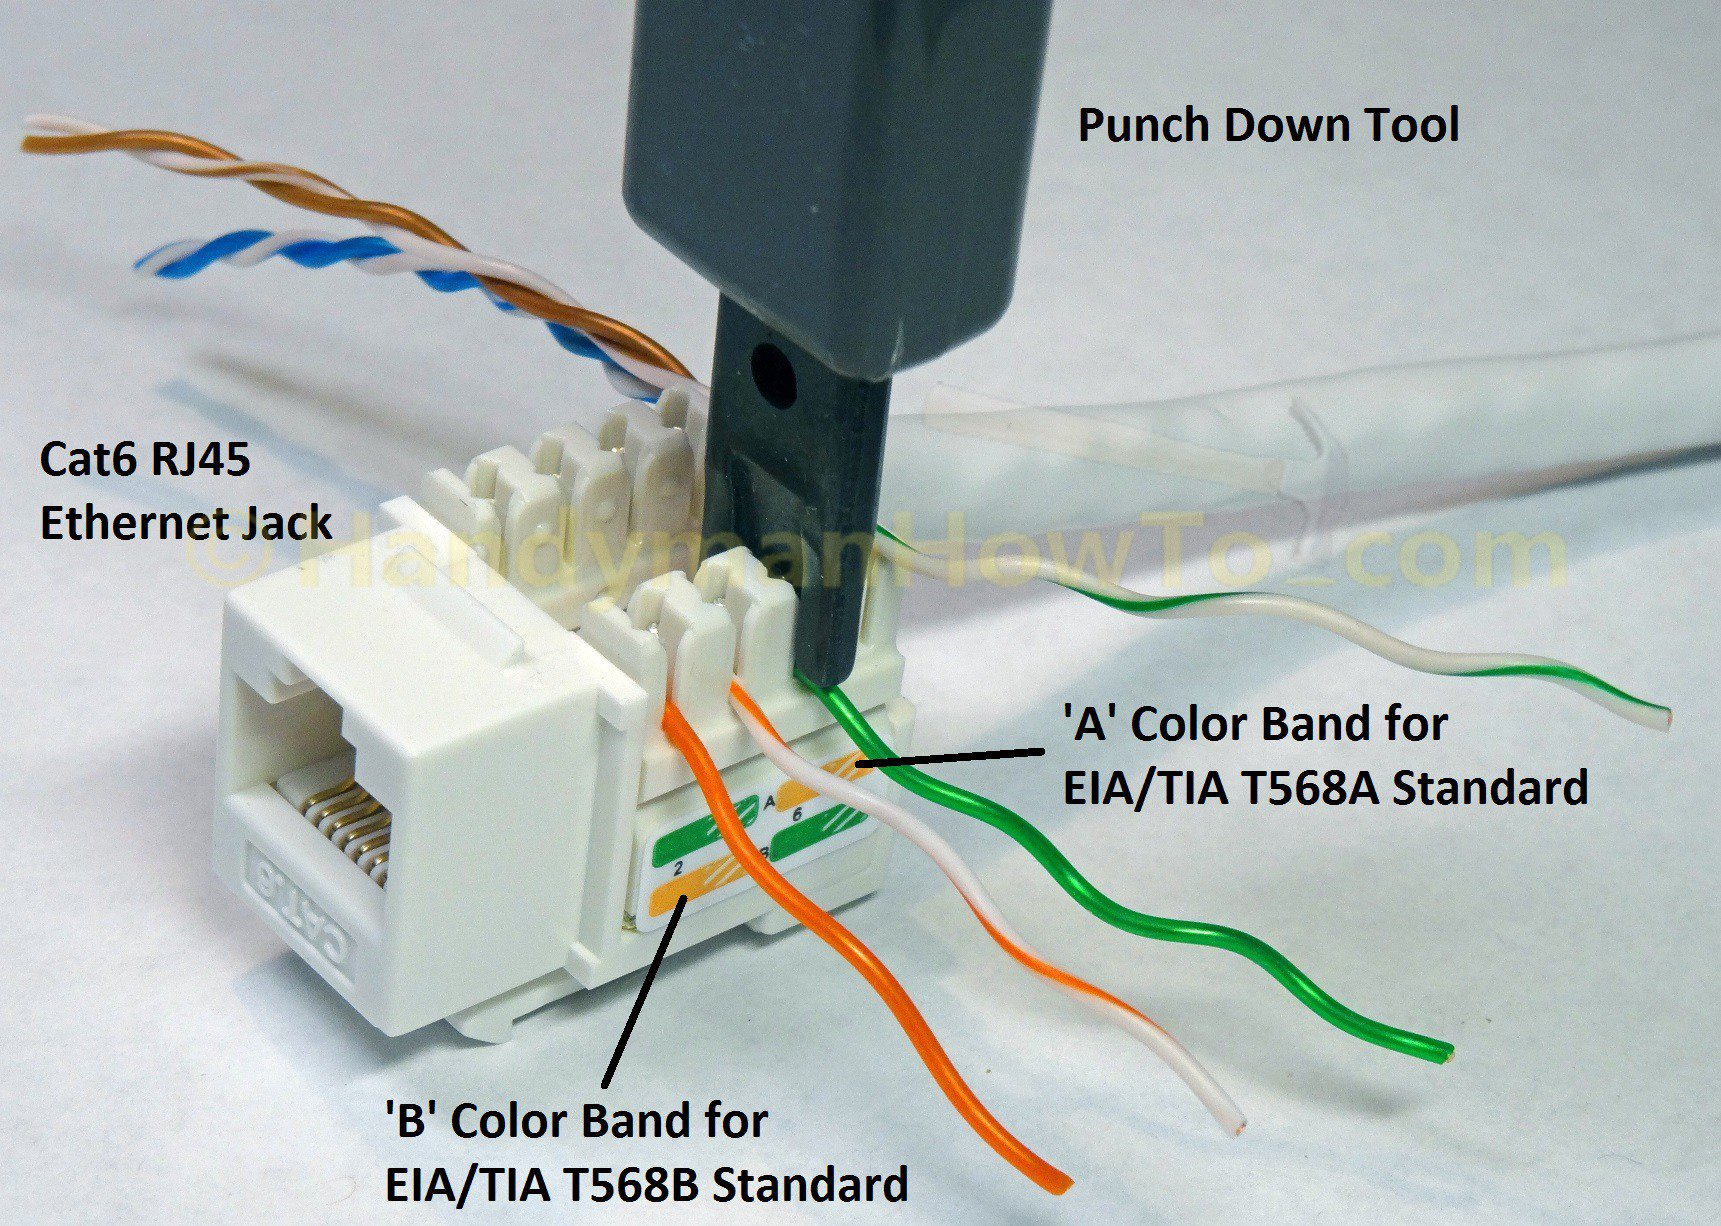 How To Wire A Cat6 Rj45 Ethernet Jack - Handymanhowto - Cat 6 Wiring Diagram For Wall Plates